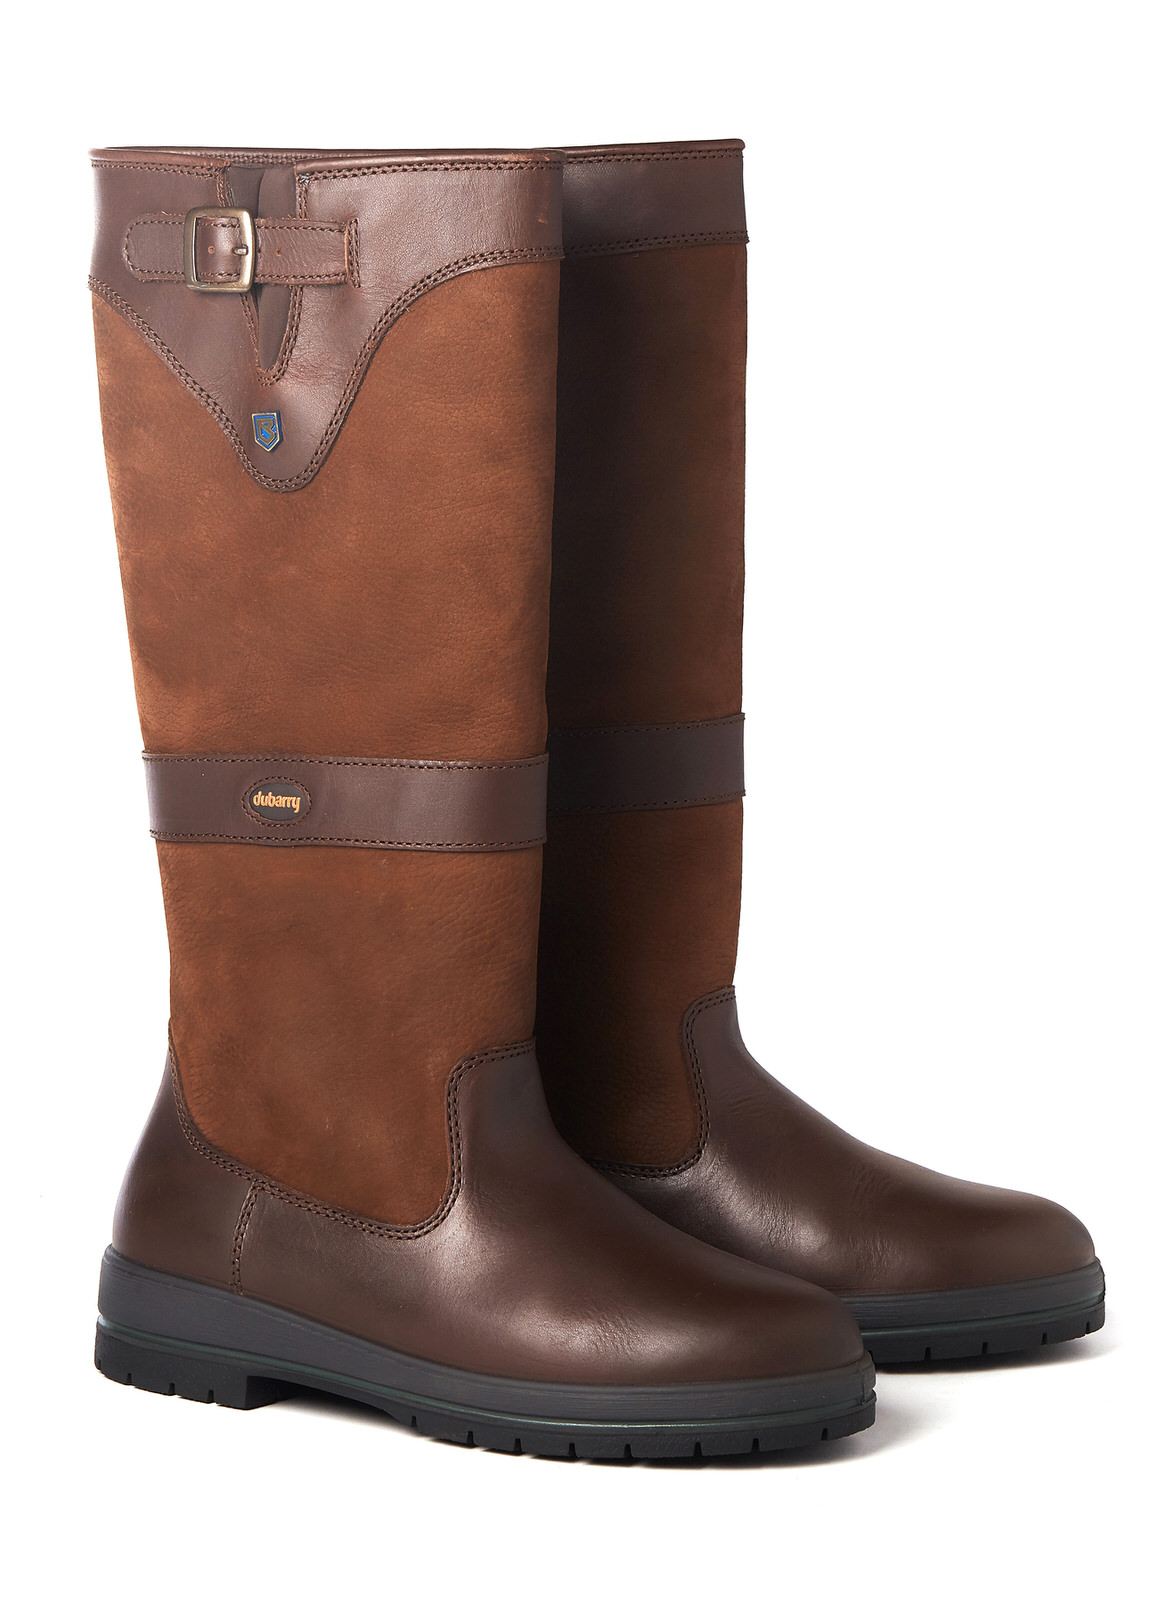 Tipperary_Country_Boot_Walnut_Image_1